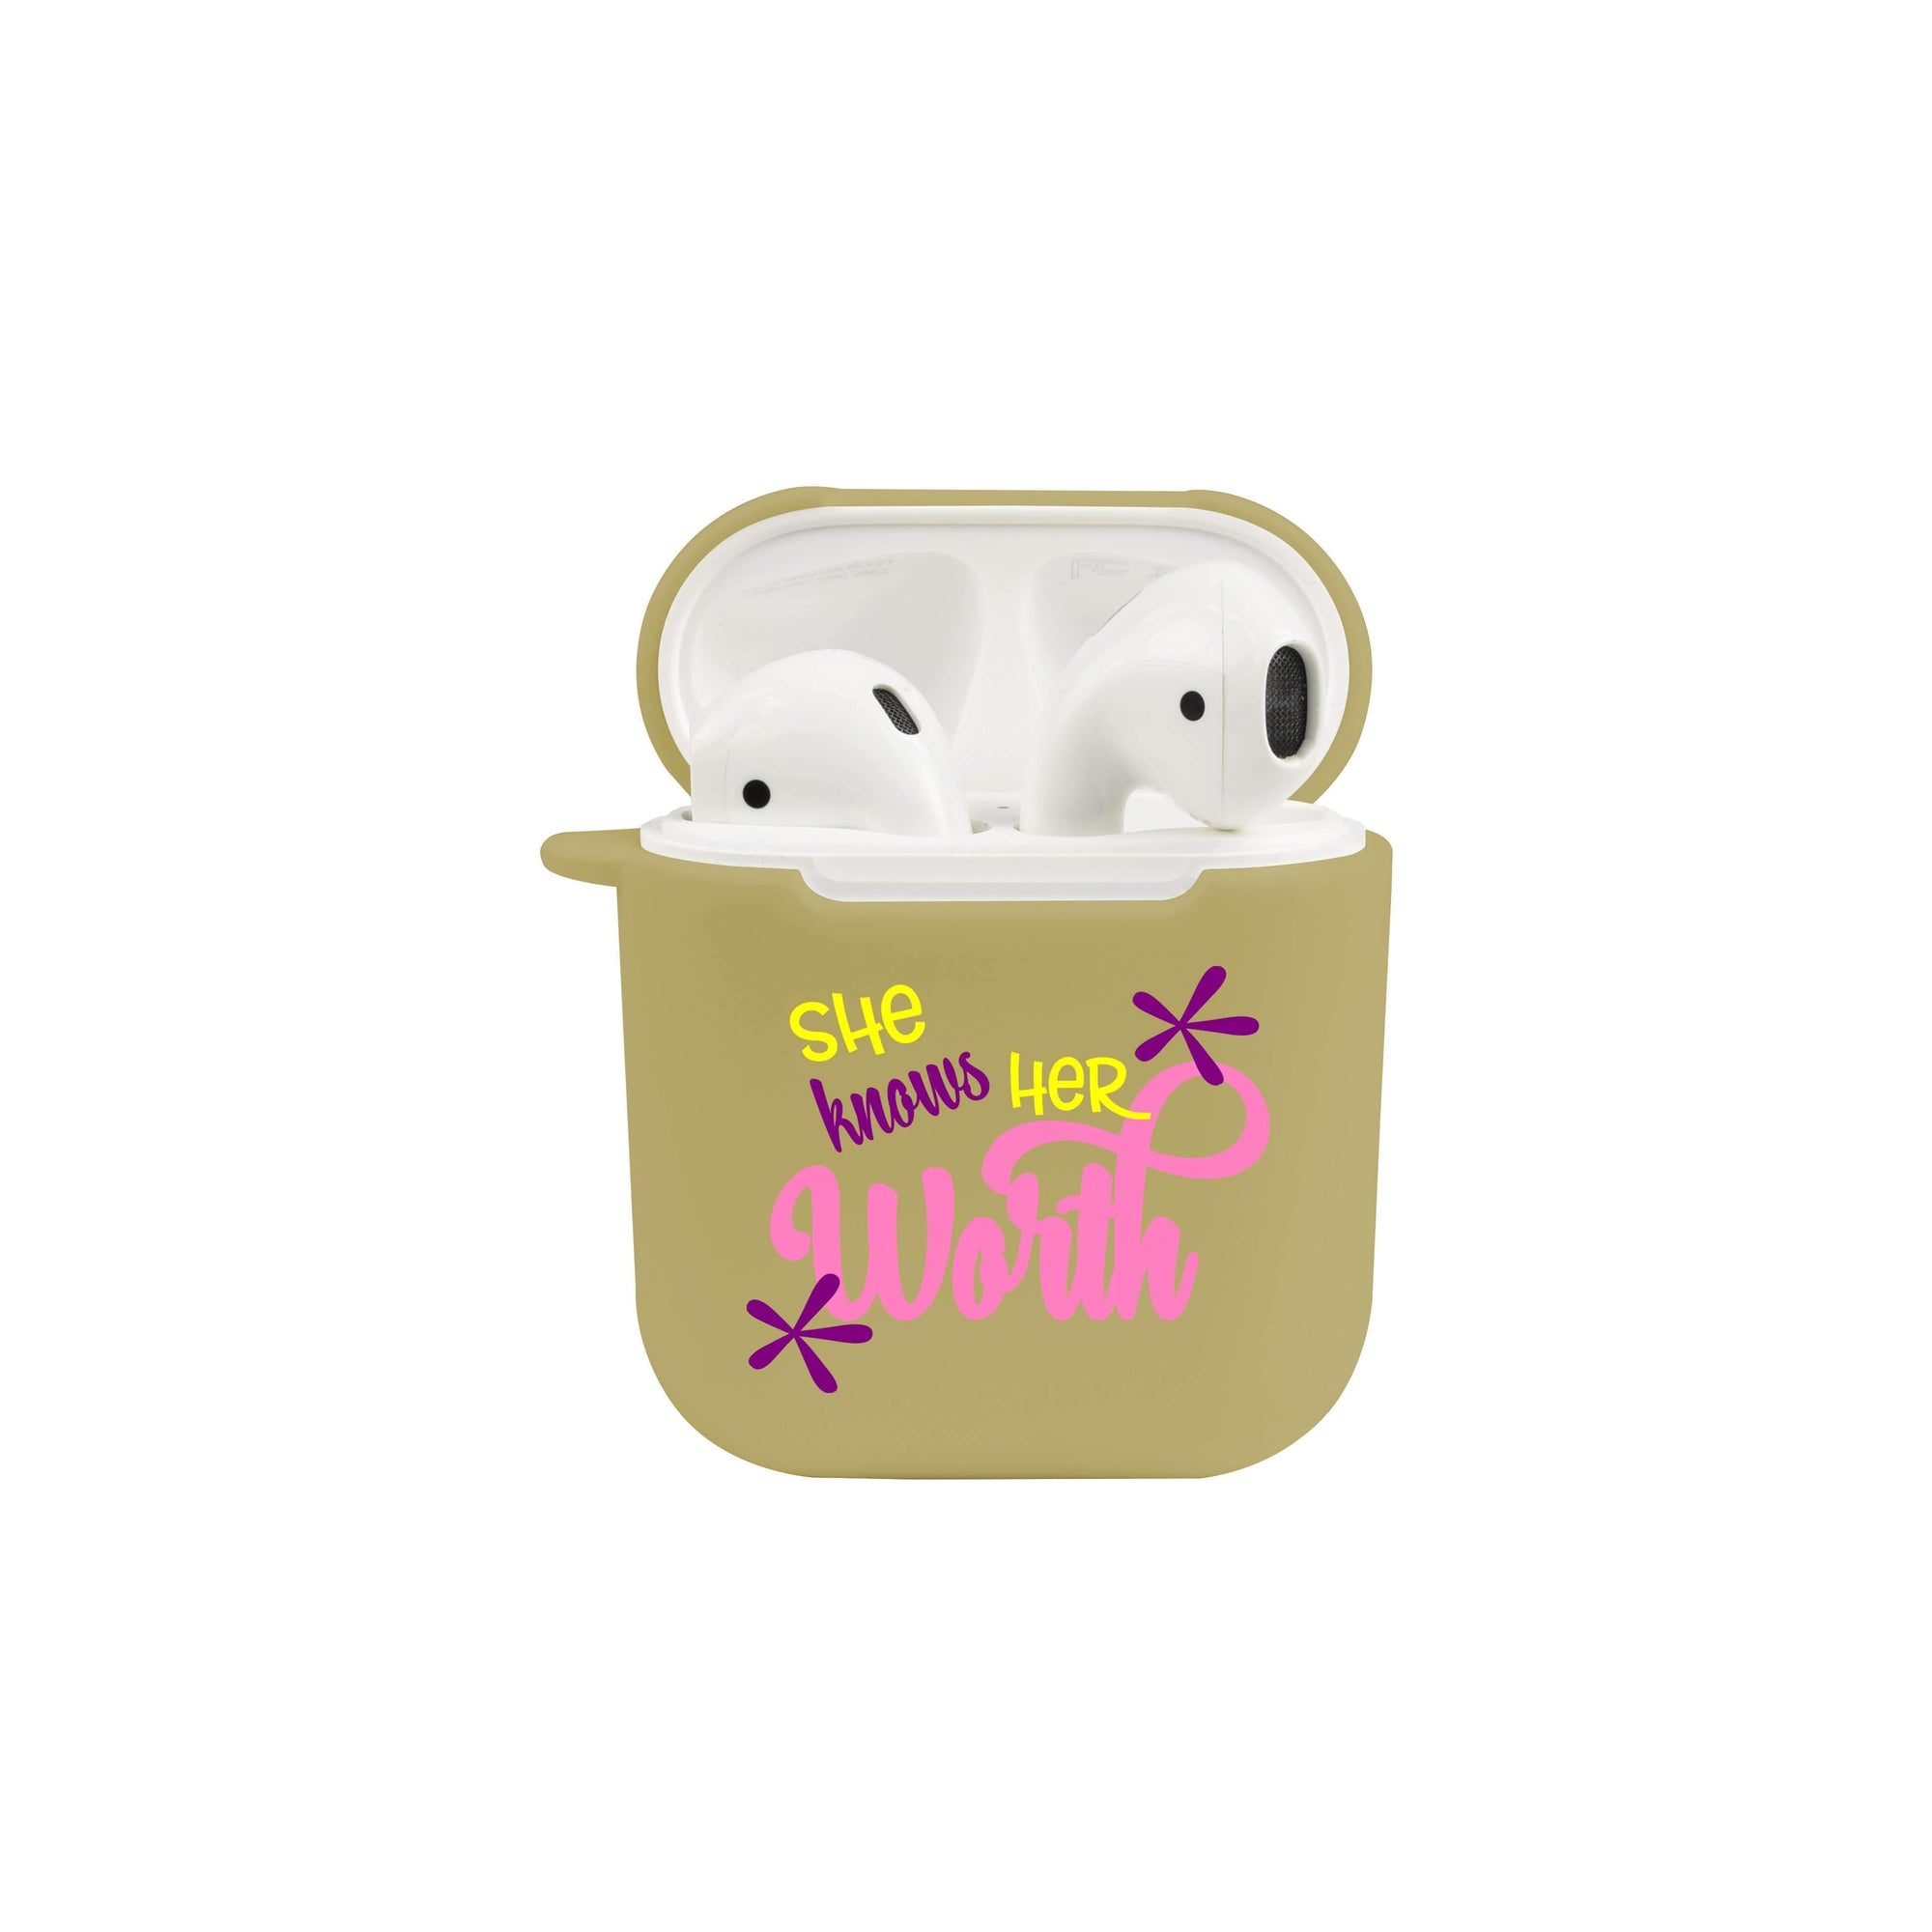 Soft Airpod Protective Case - HER WORTH